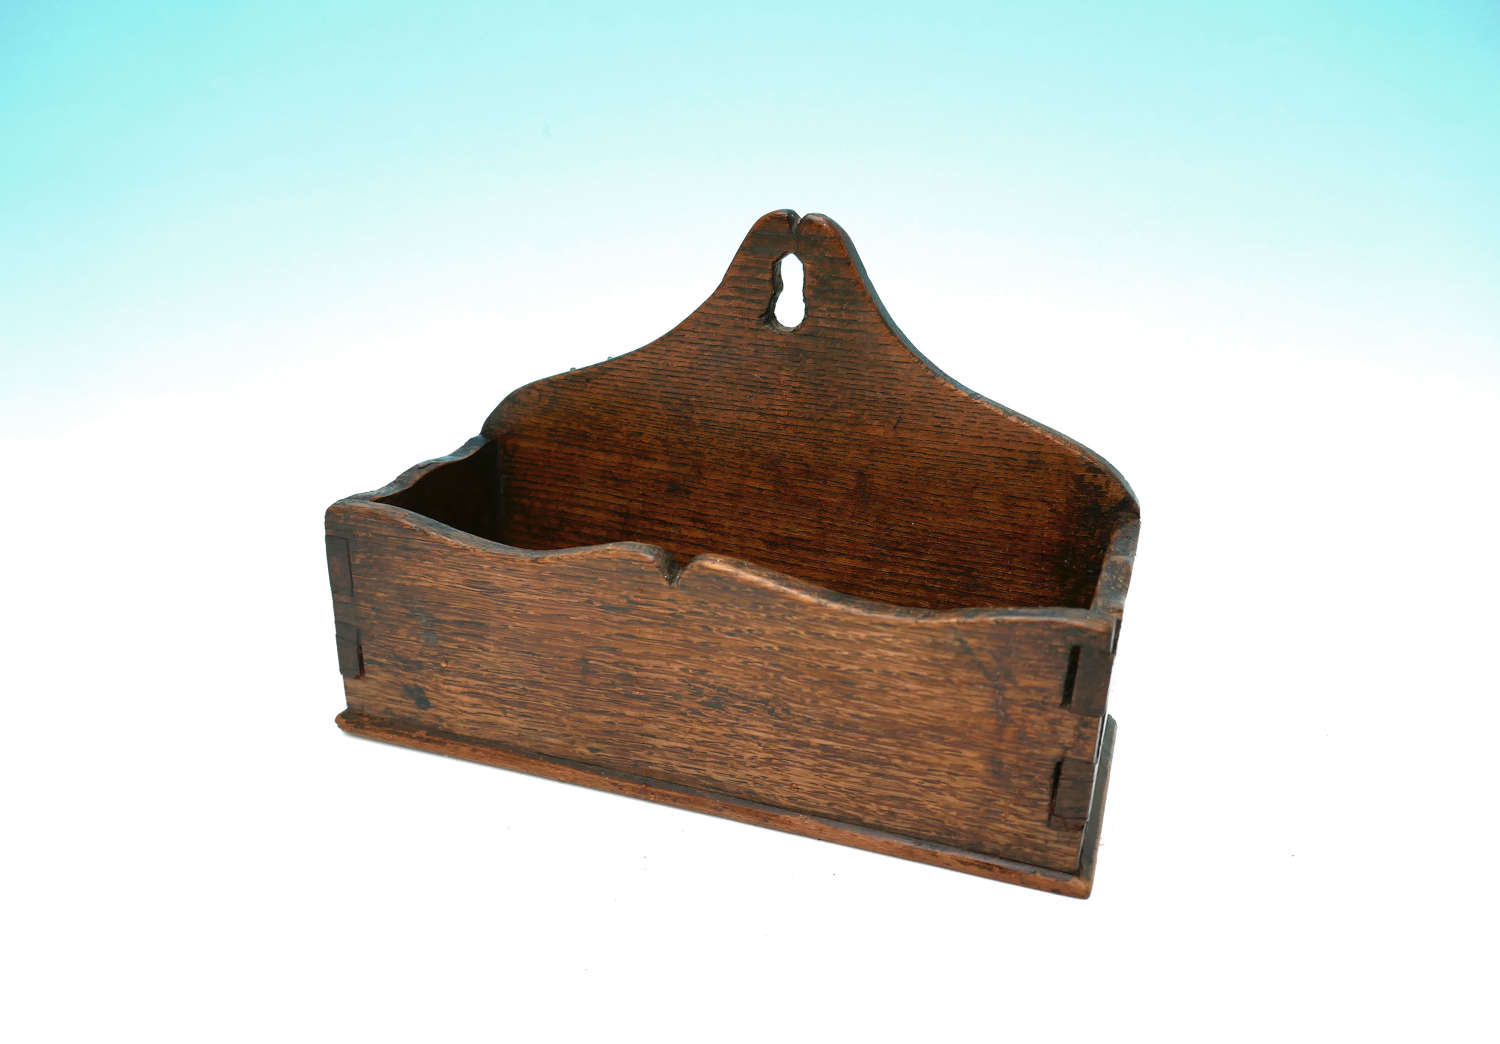 Antique Furniture 19thc Oak Wall Tidy With Shaped Design. Welsh C1800.